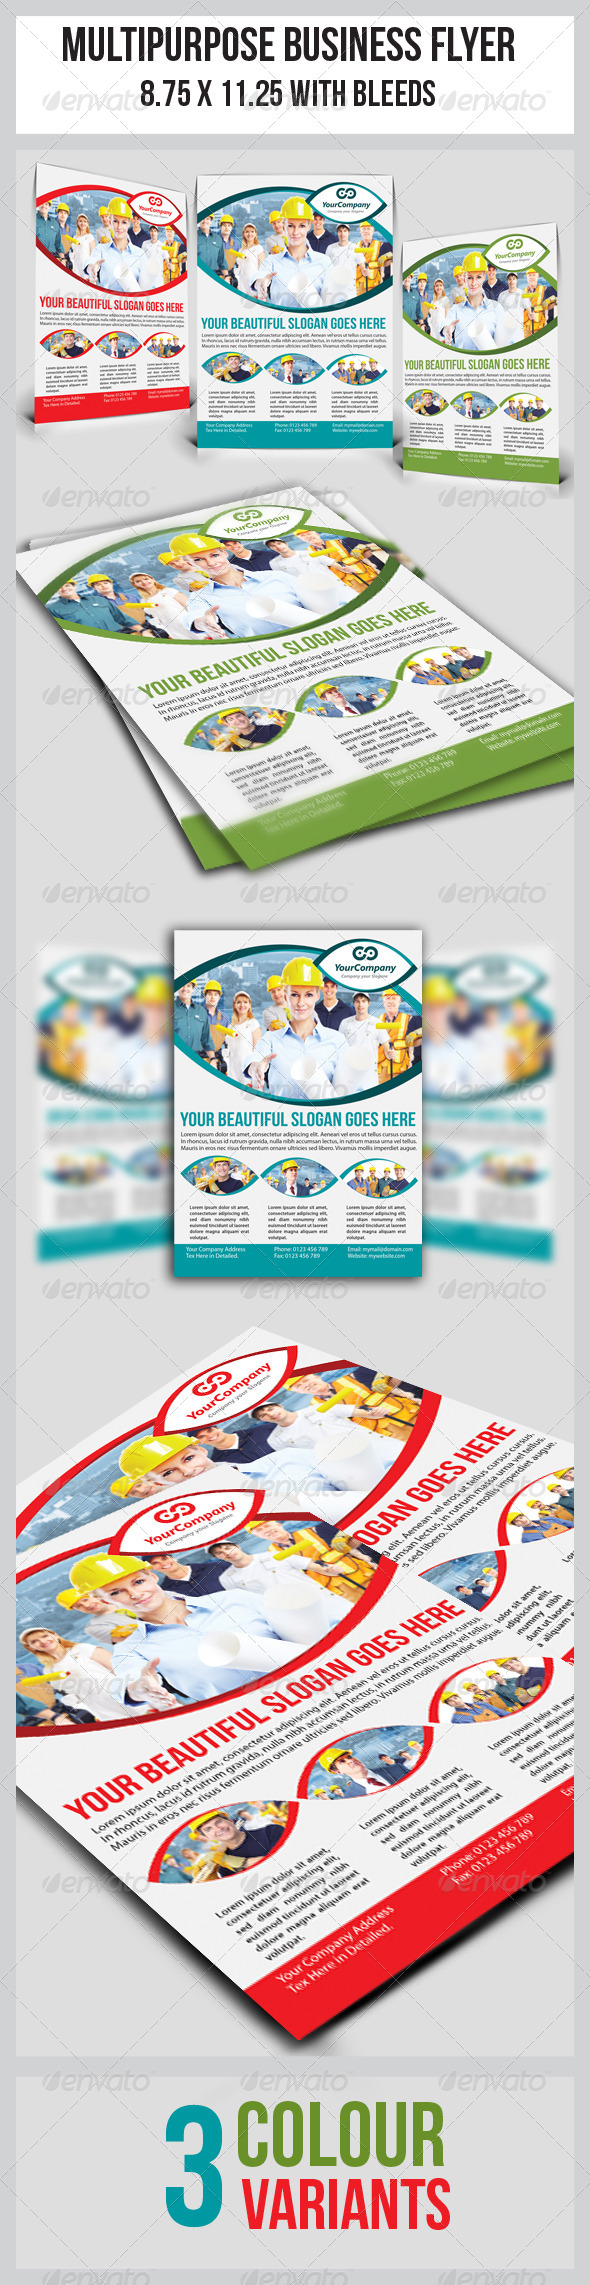 GraphicRiver Multipurpose Business Flyer 10 3767208